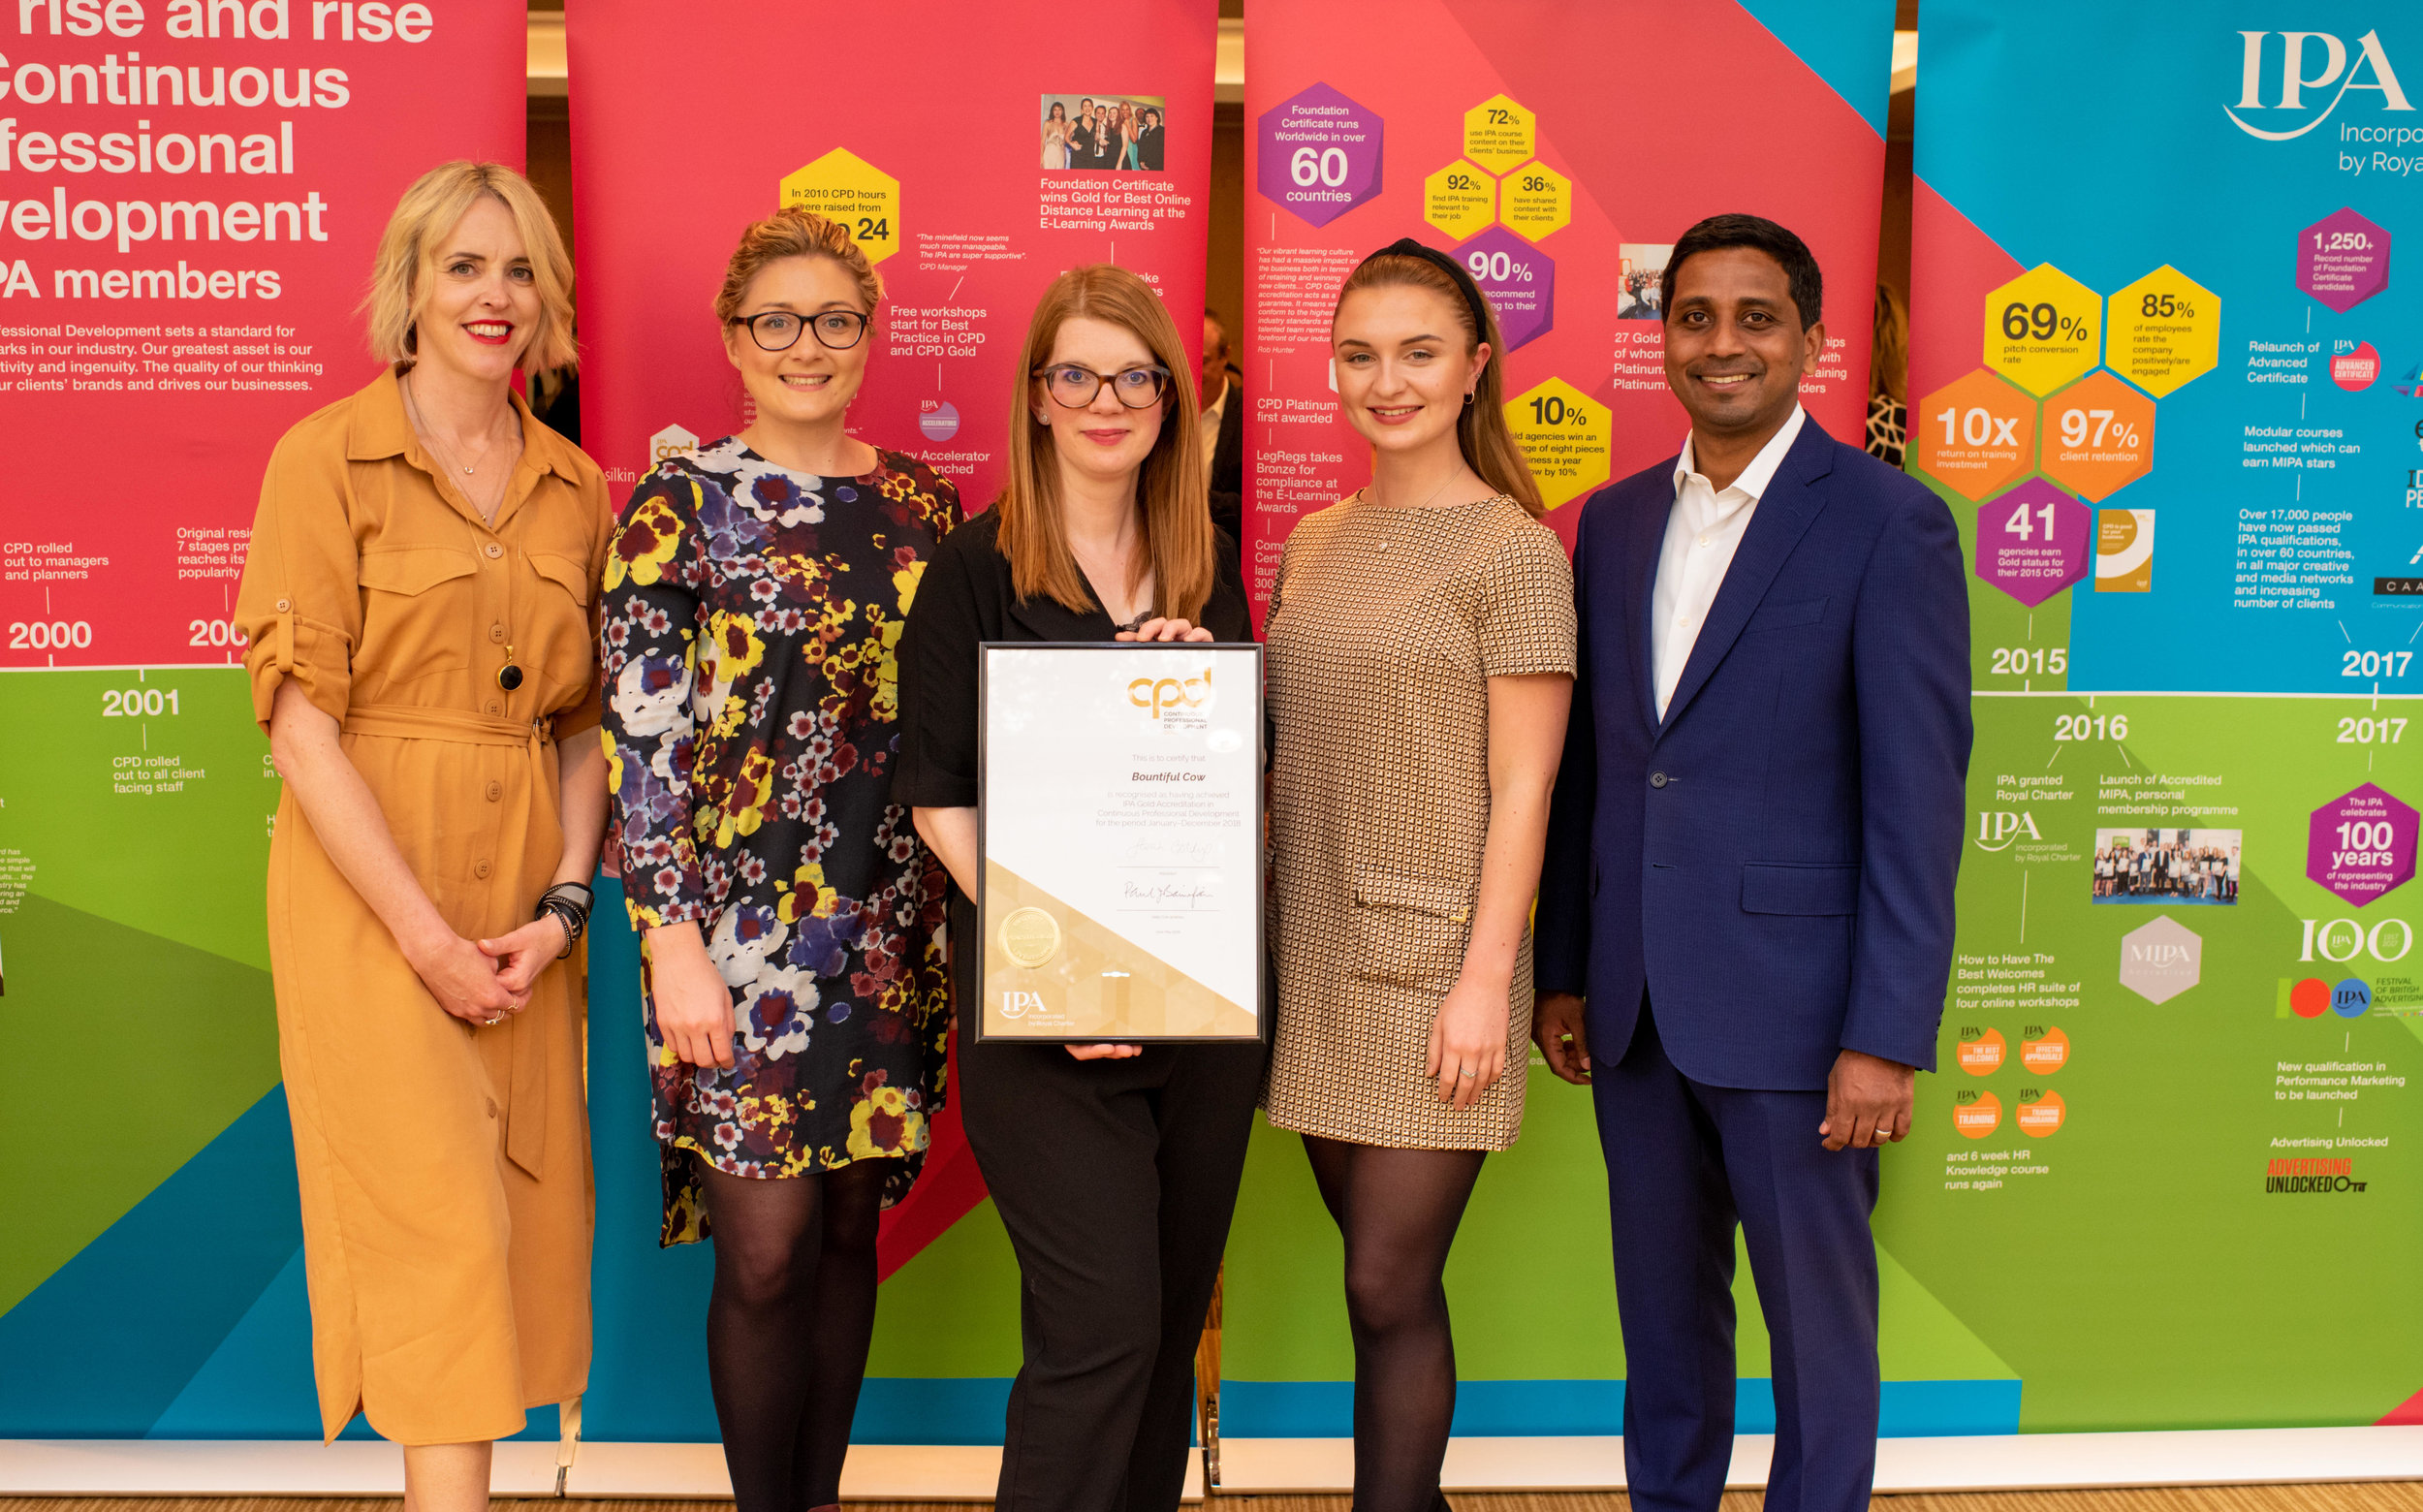 - 'We are extremely proud to not only be the fastest agency to achieve IPA accreditation but to also be the fastest agency to then achieve CPD Gold Accreditation'